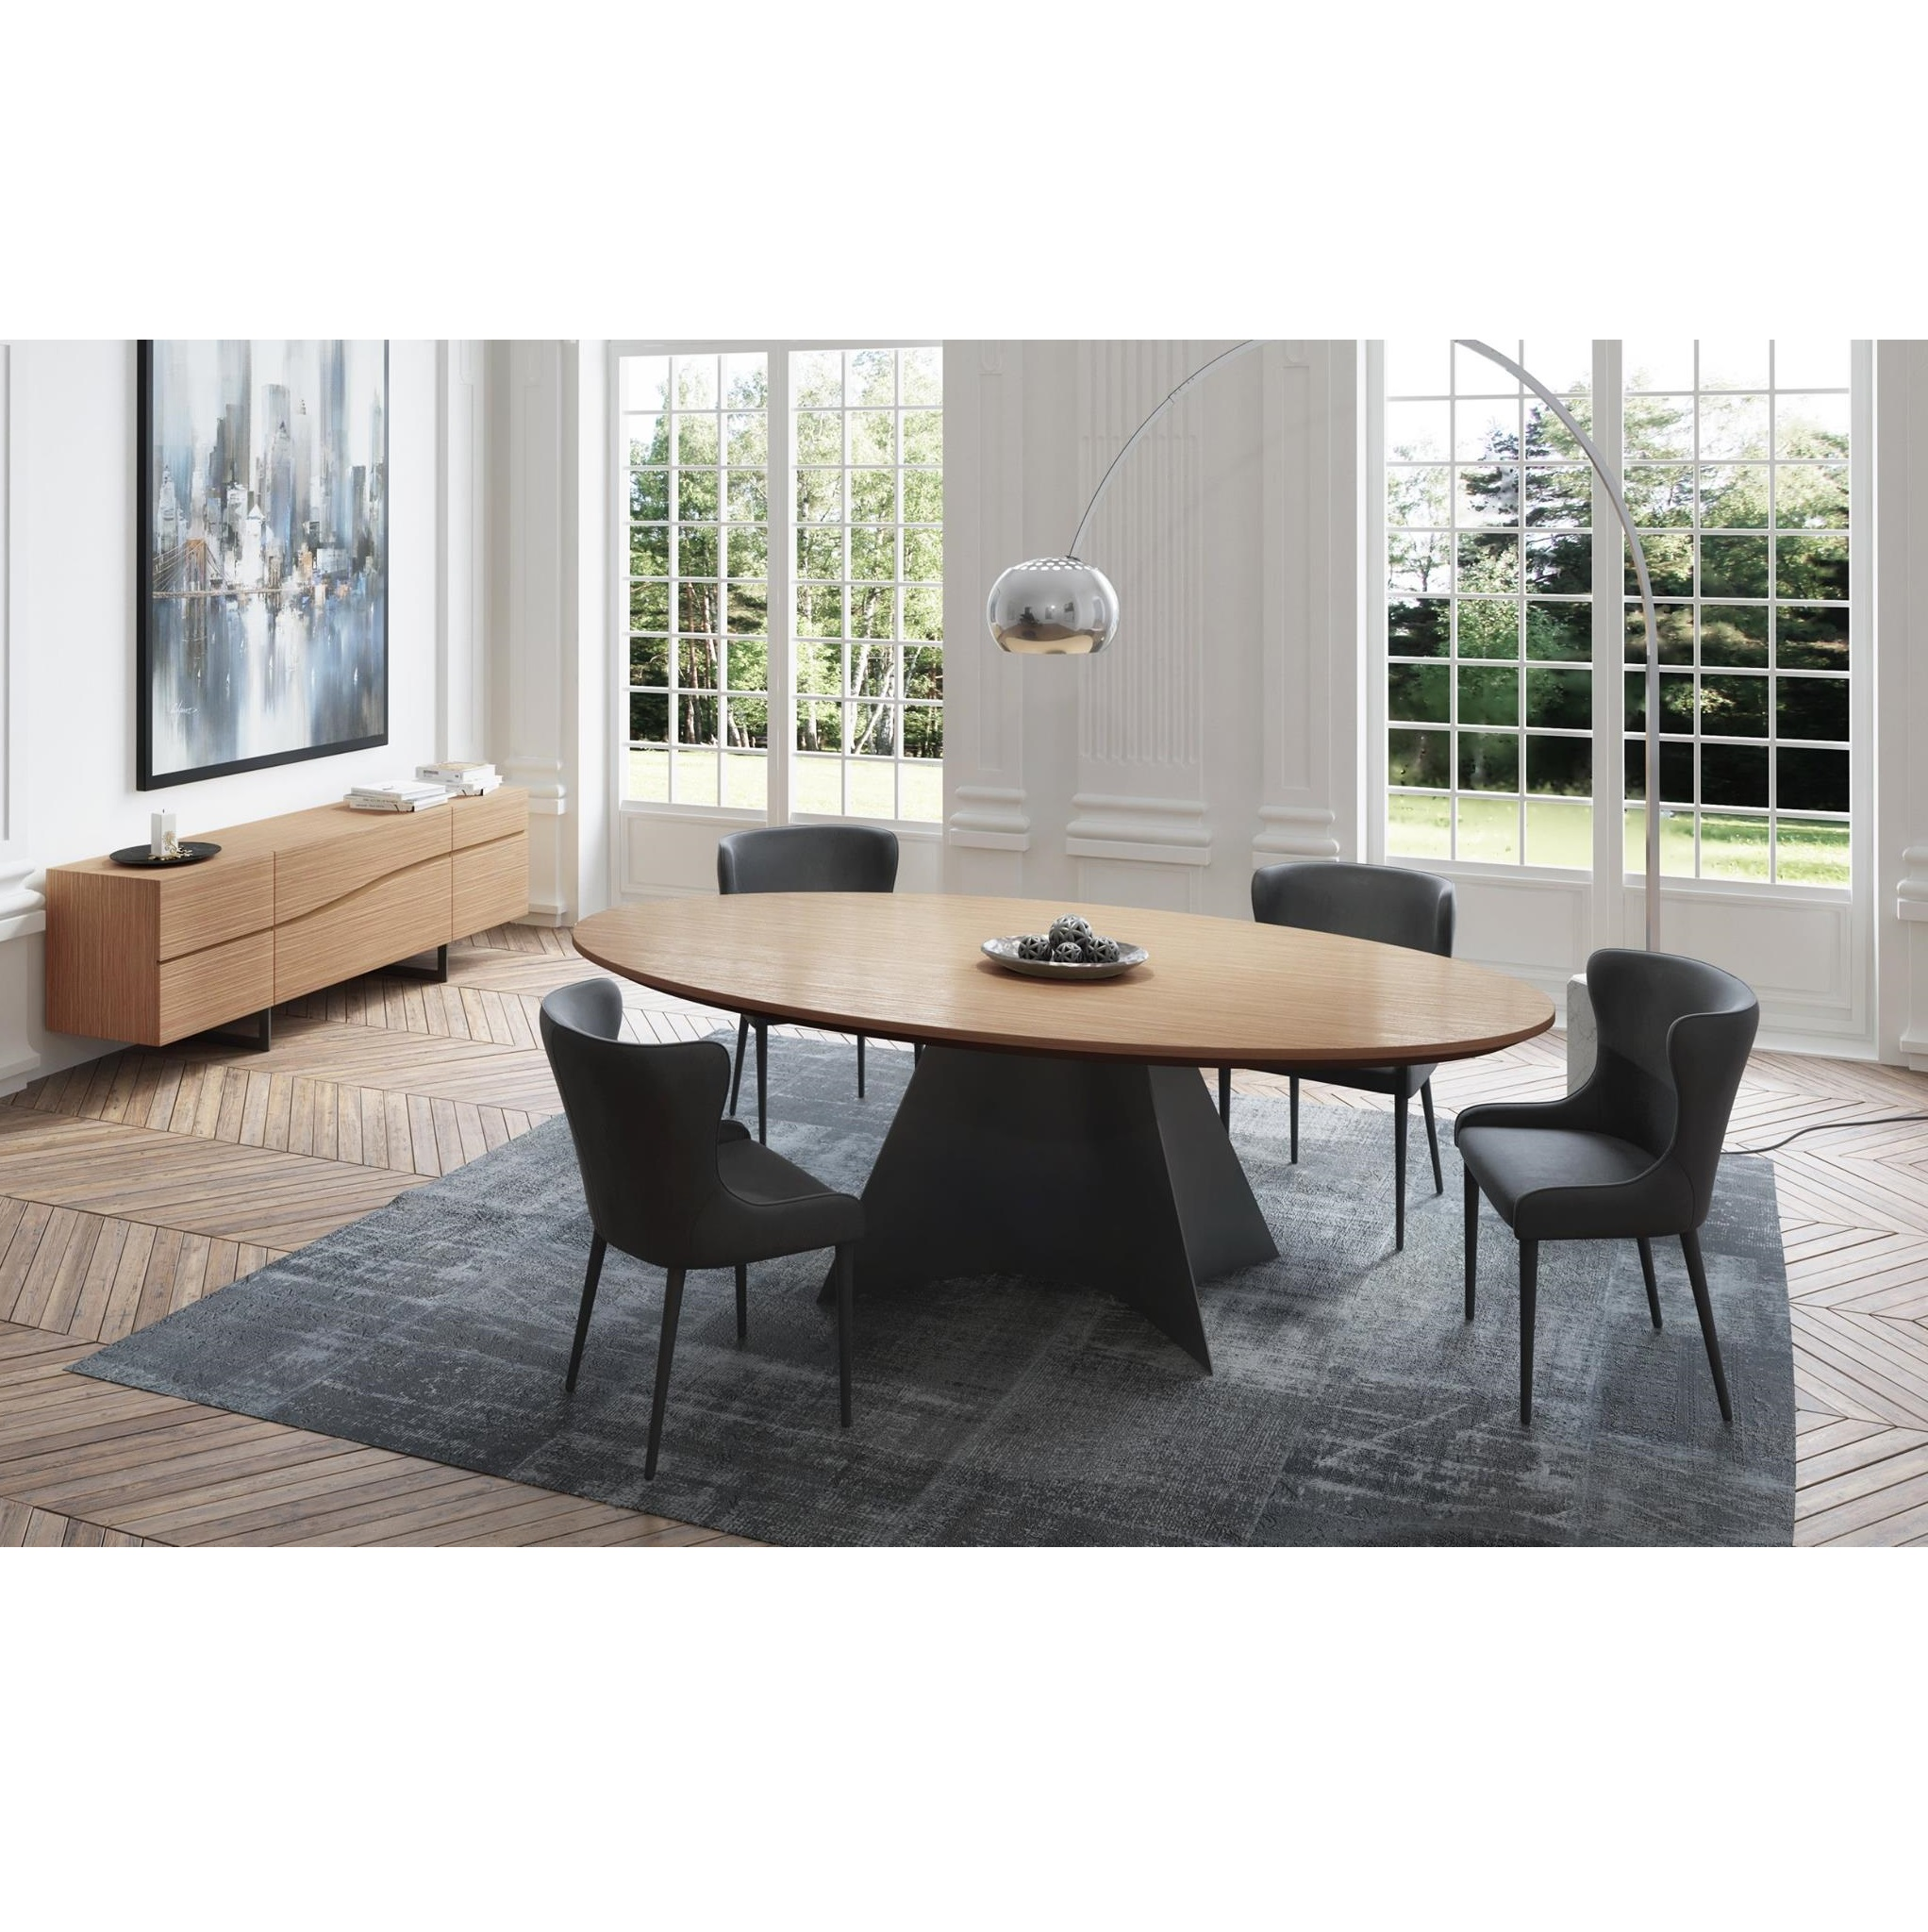 teak dining oval trafalgar goodwood sutcliffe table